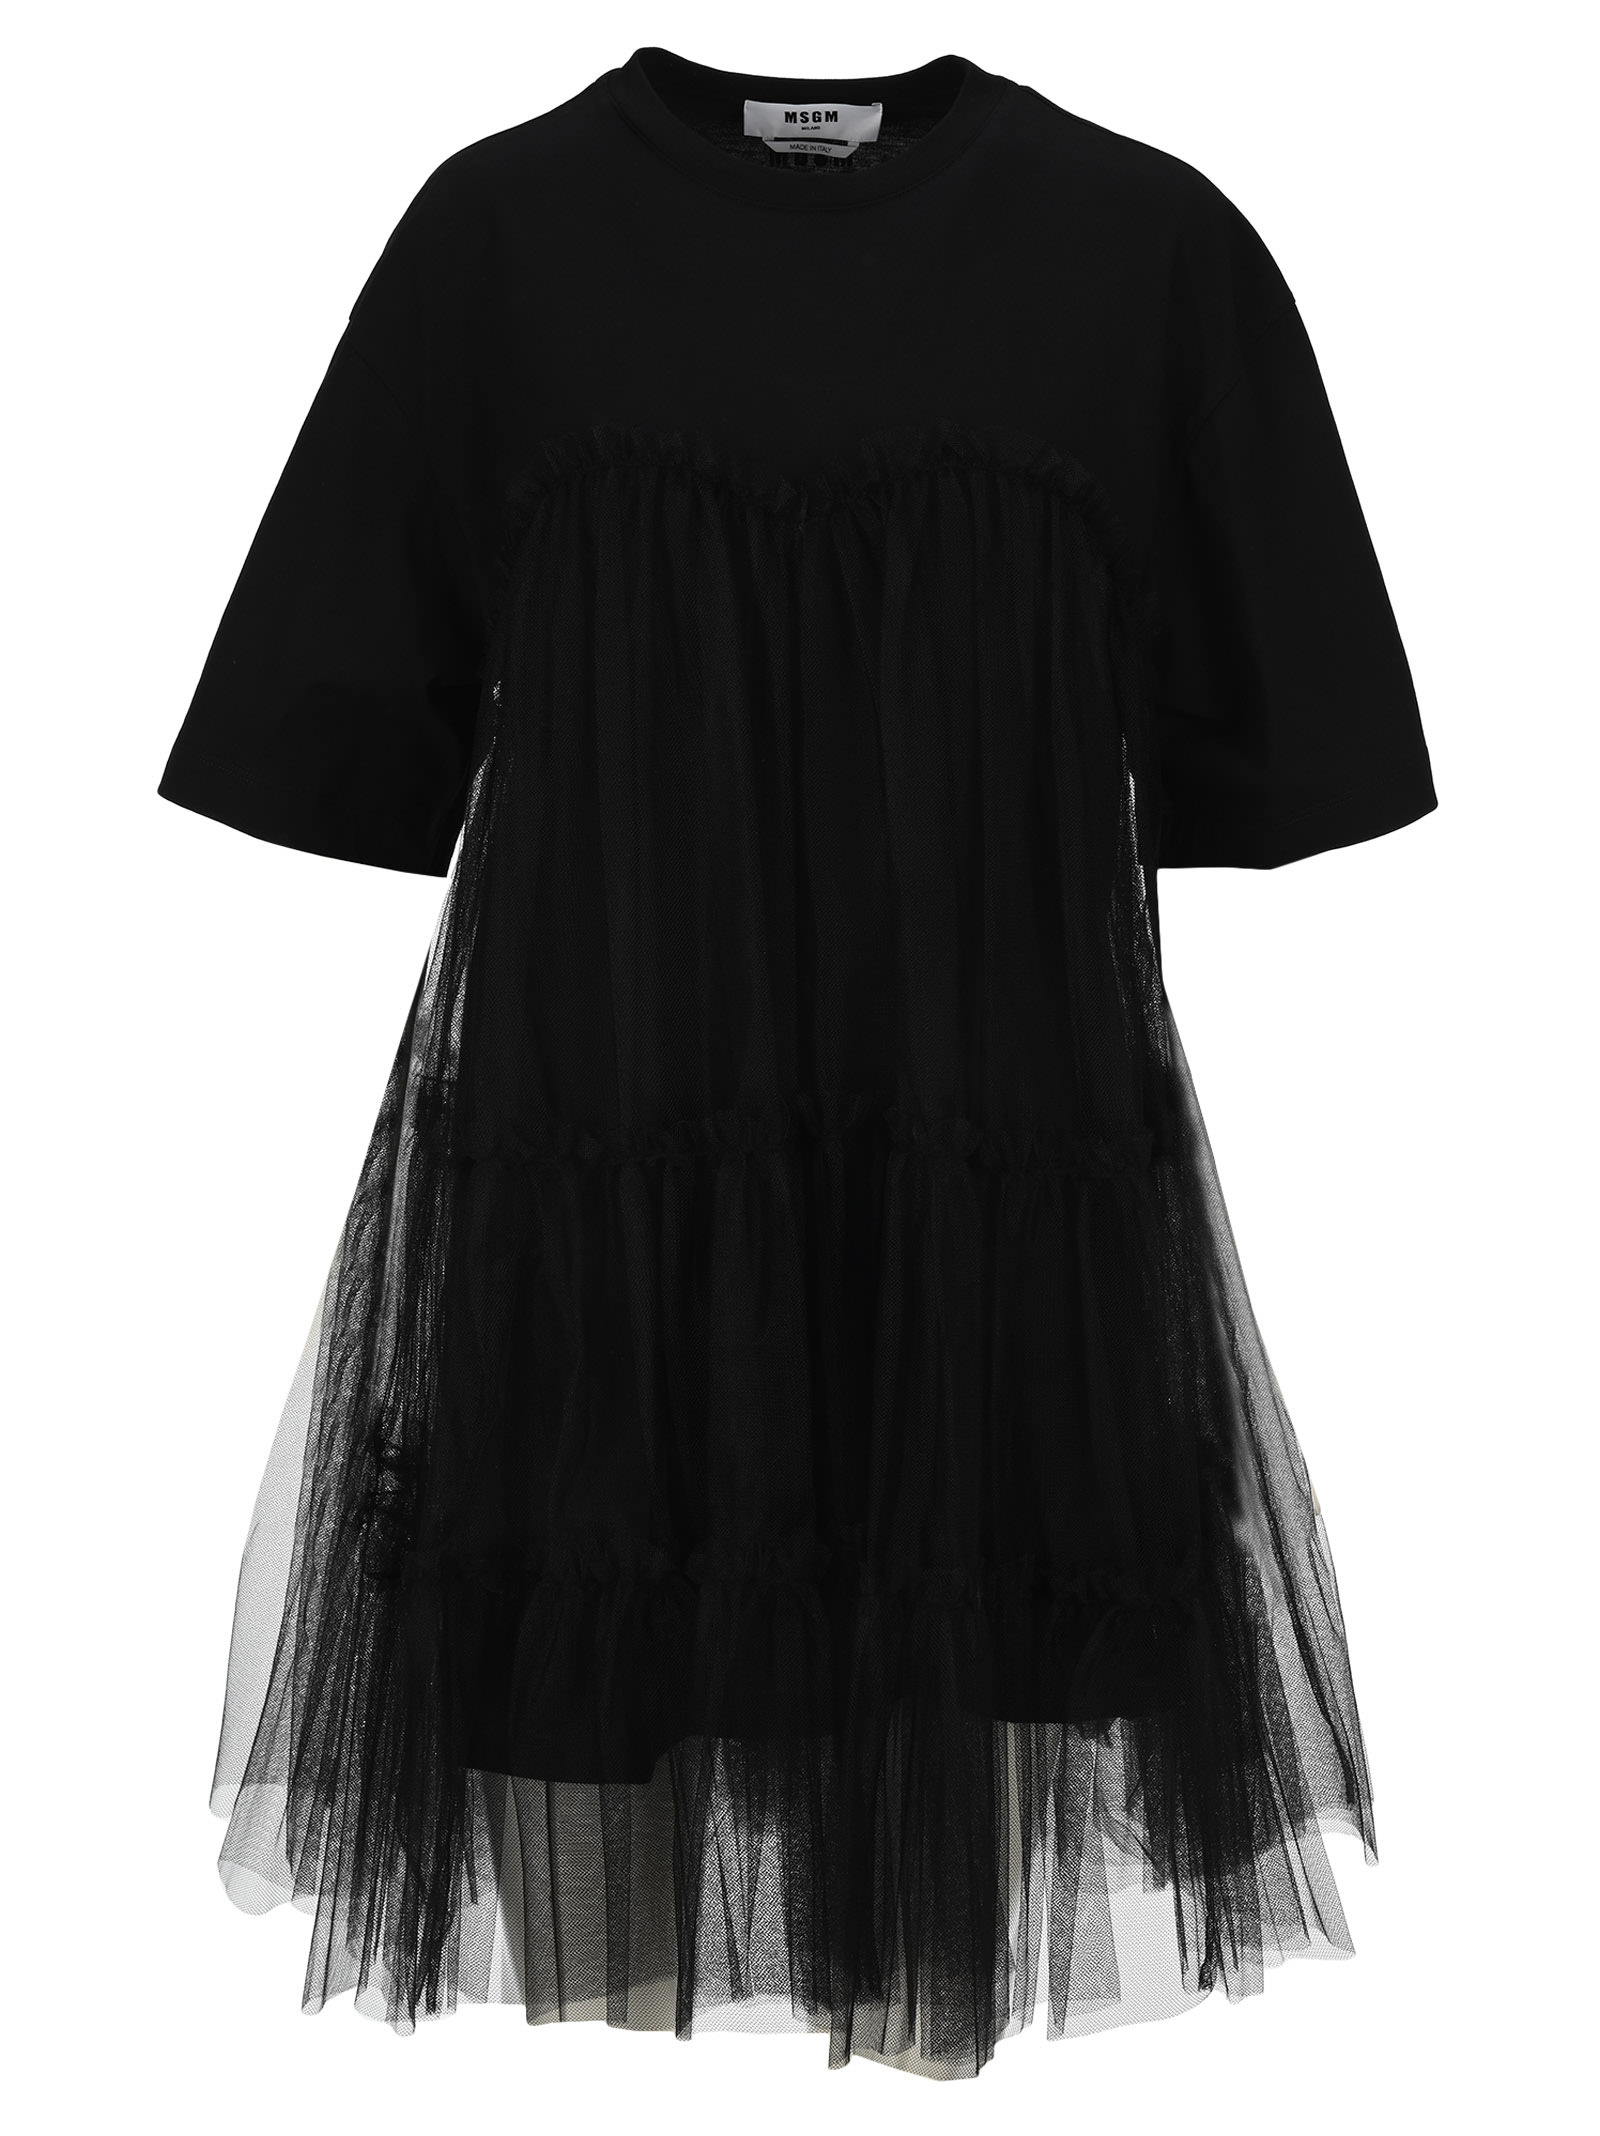 Buy MSGM Msgm Flared Tulle T-shirt Dress online, shop MSGM with free shipping